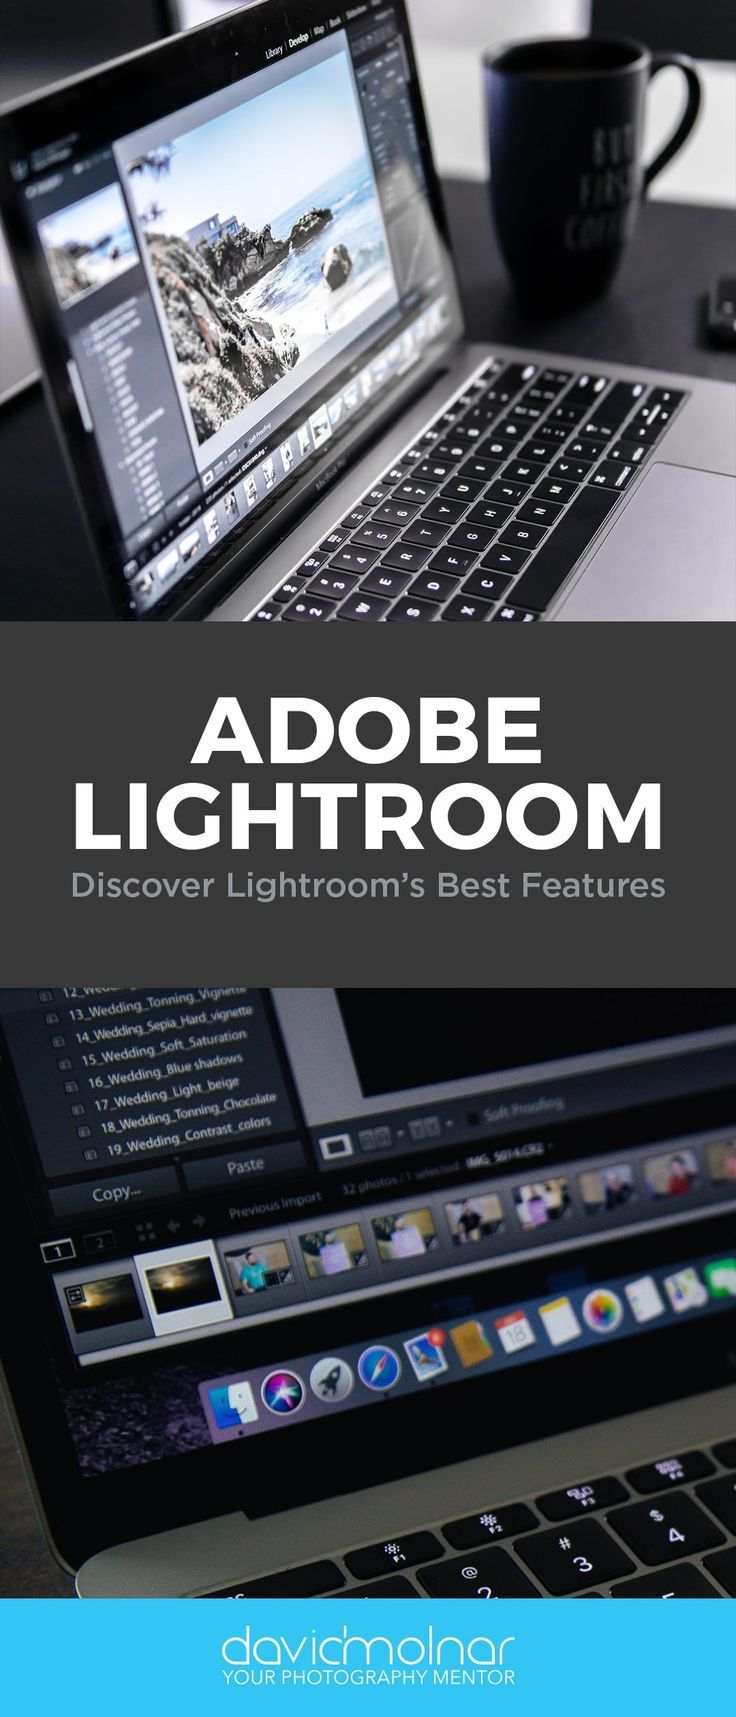 Lightroom file could not be found